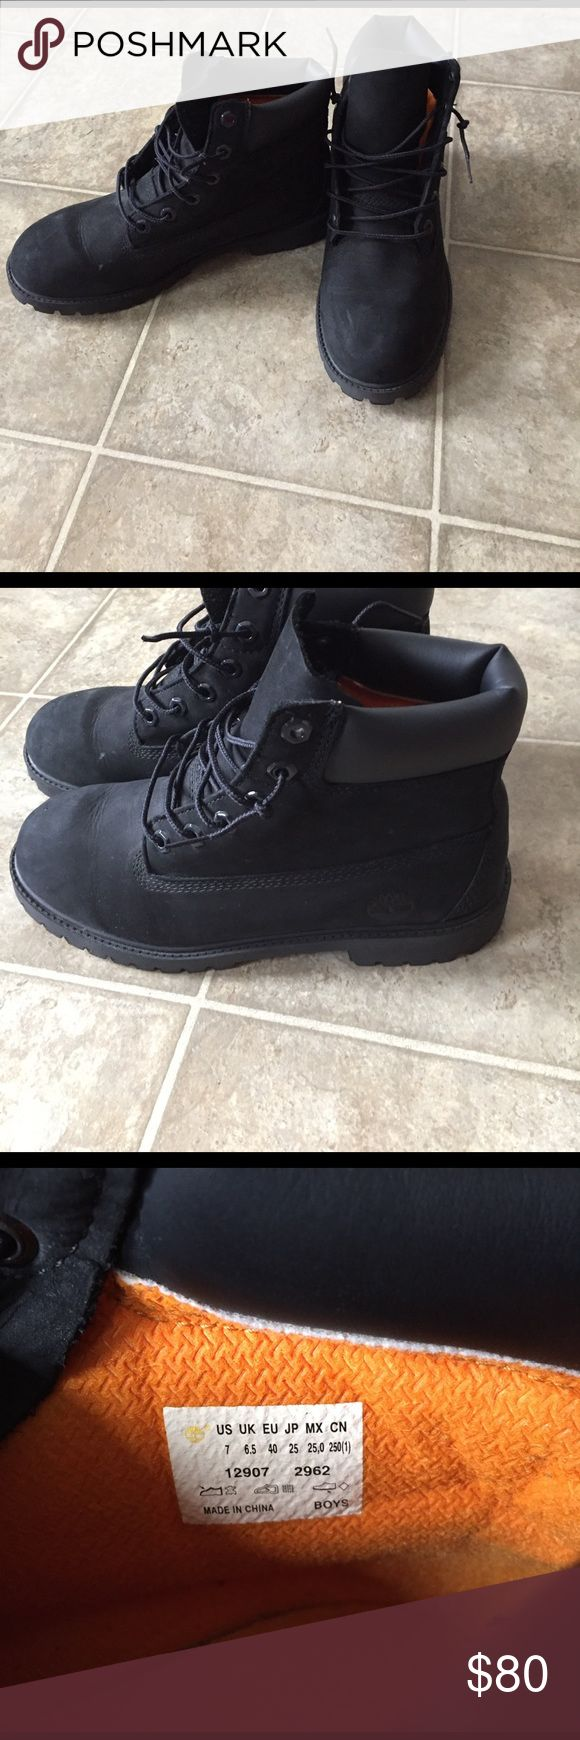 Black Timberland 6 inch Boots All black timberland boots size 7 boys (9 women's) Timberland Shoes Winter & Rain Boots